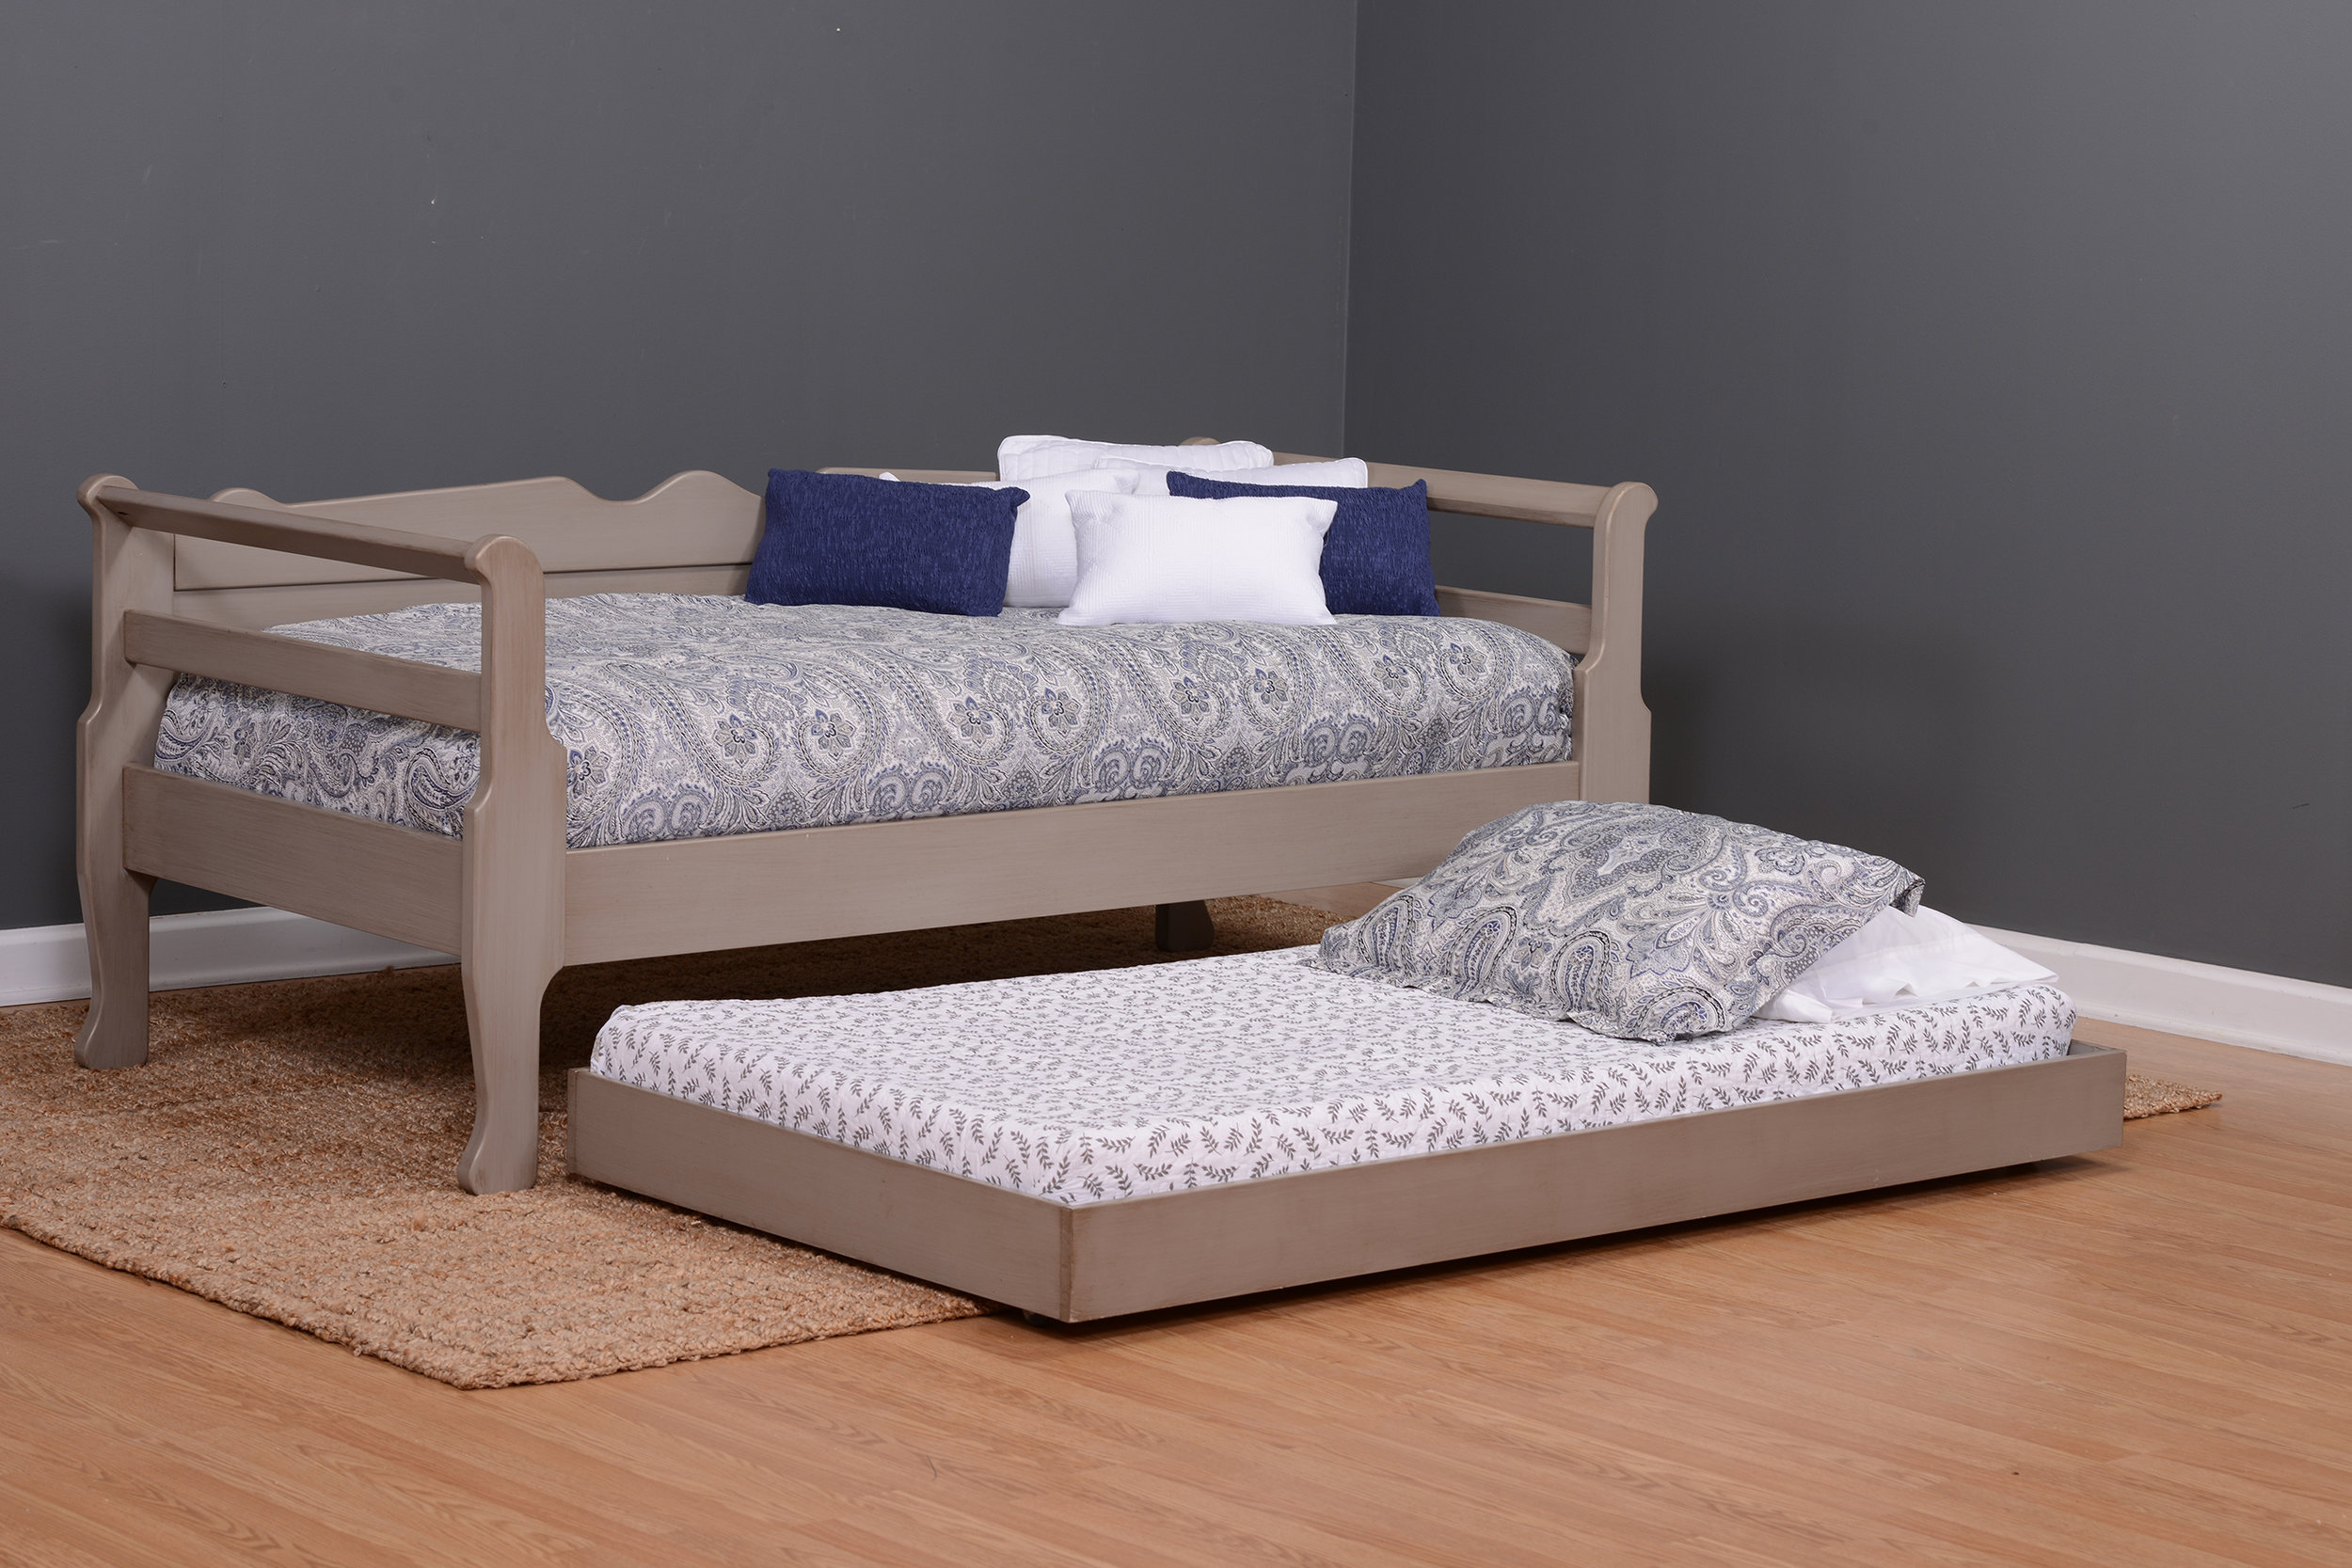 Lyndale trundle Daybed